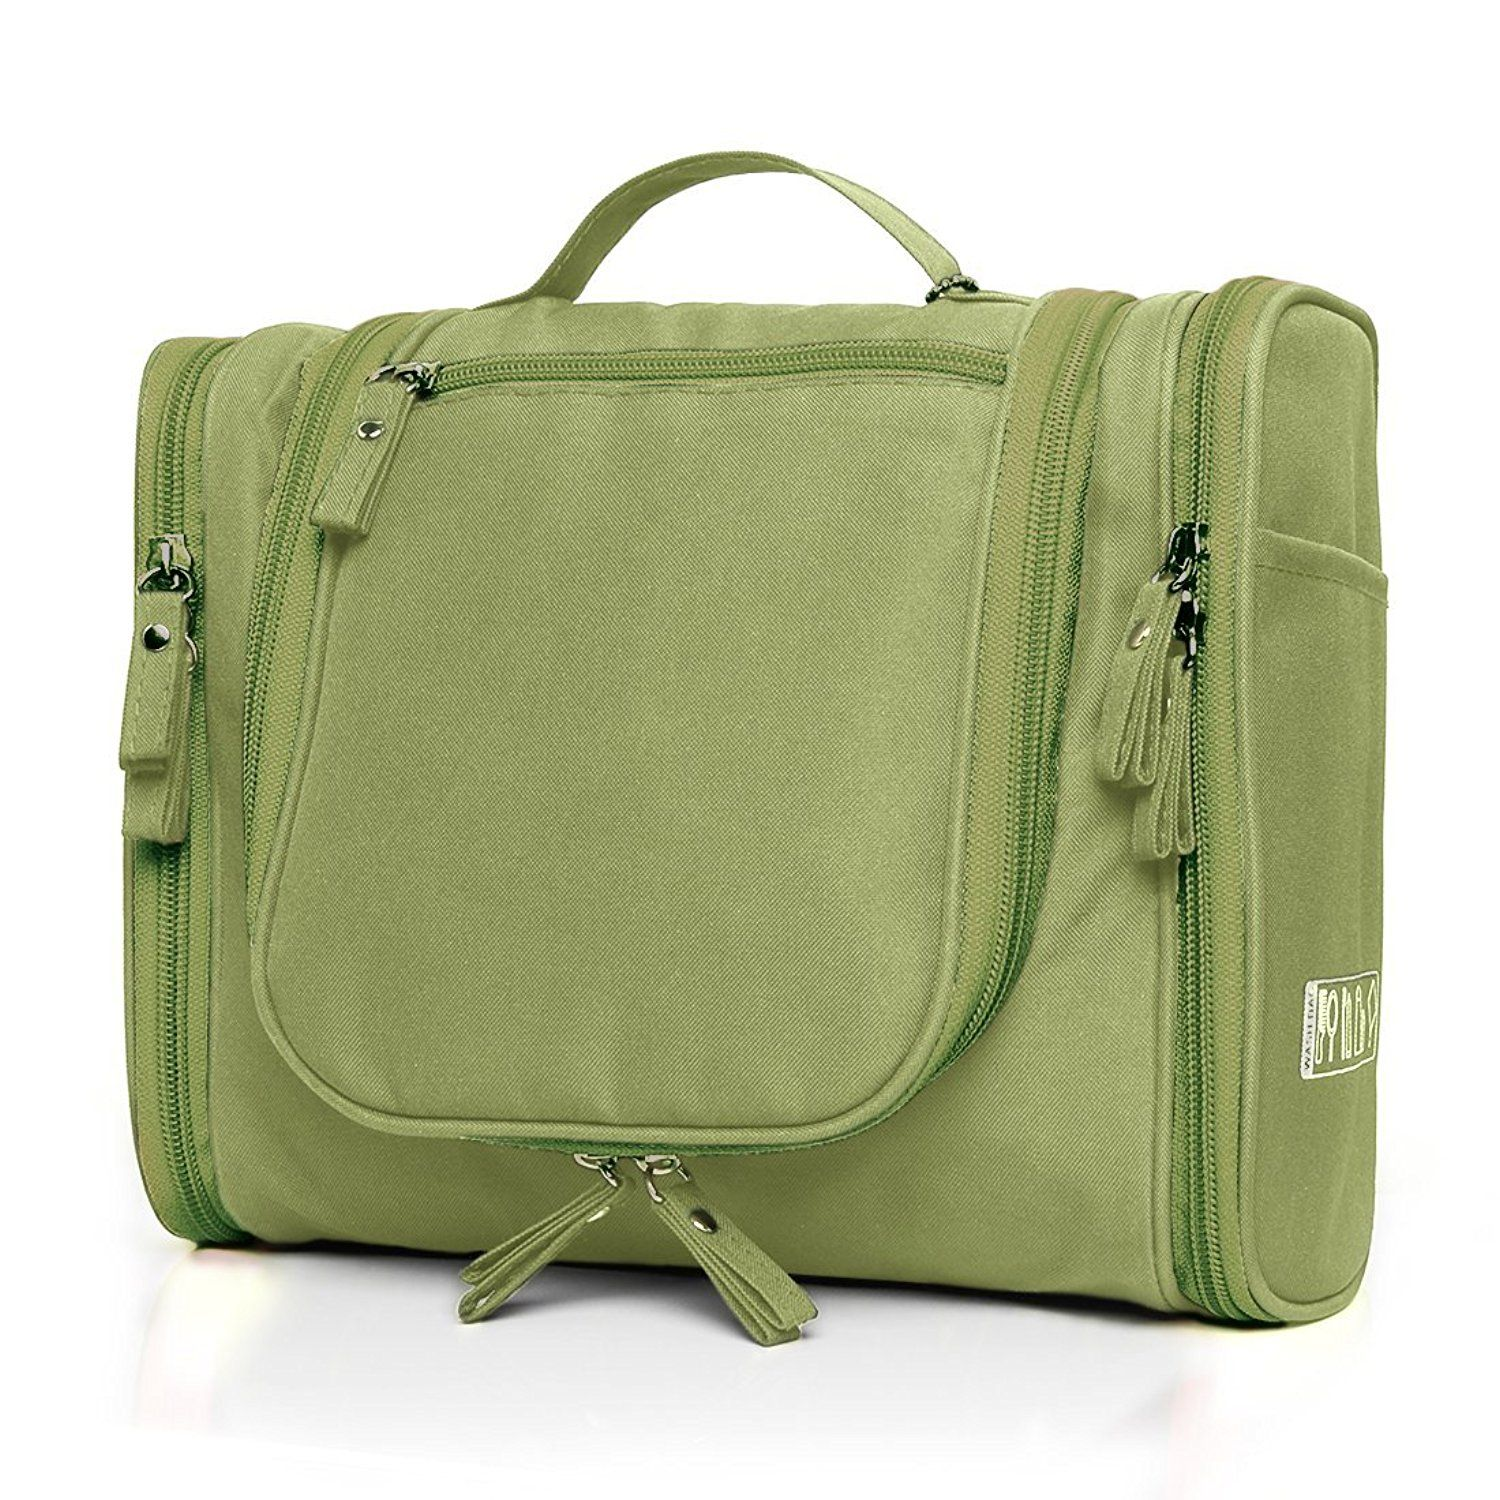 077a609694e8 Heavy Duty Hanging Toiletry Bag - Travel Cosmetic Makeup Bag for ...